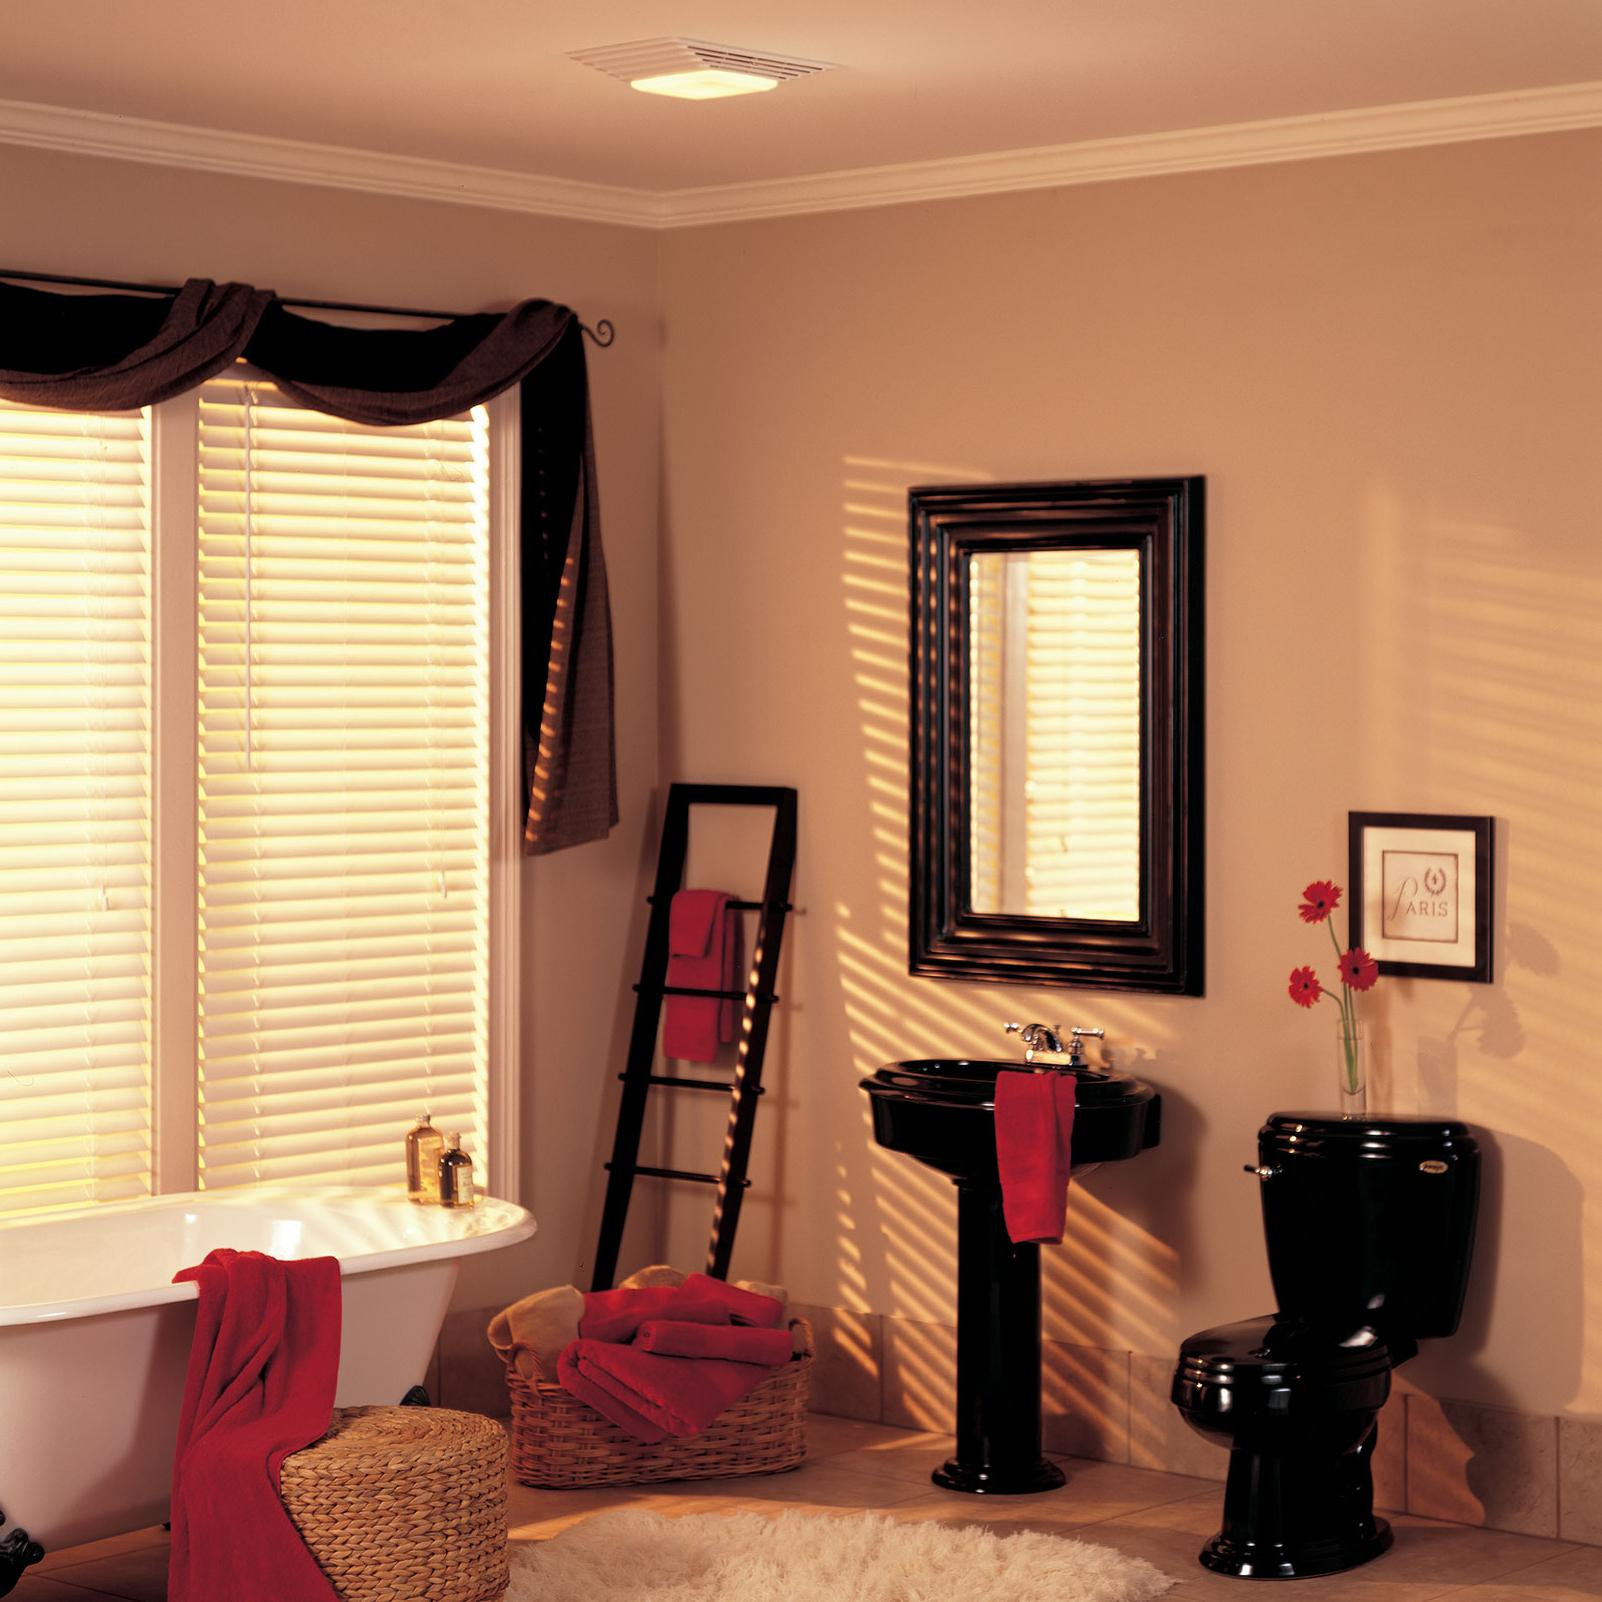 Broan Nutone 659 Heater Fan And Light Combo For Bathroom And Home 2 5 Sones 1300